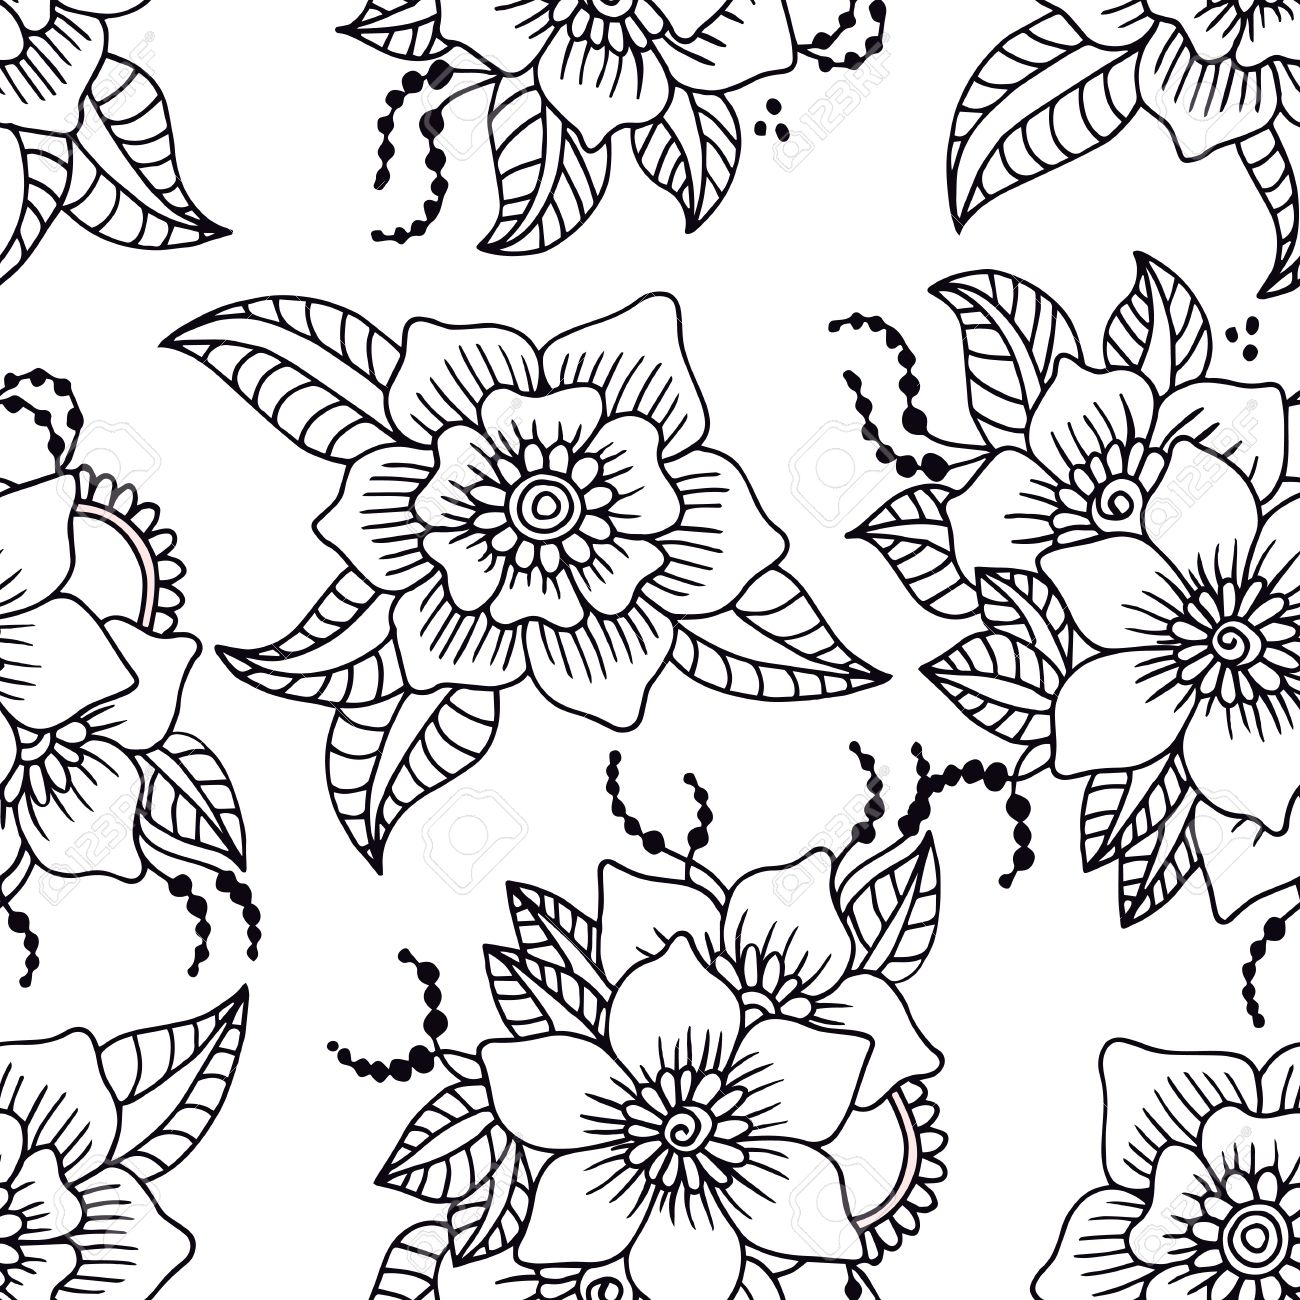 Abstract seamless pattern with hand drawn white flowers with abstract seamless pattern with hand drawn white flowers with black outline vector illustration stock mightylinksfo Gallery